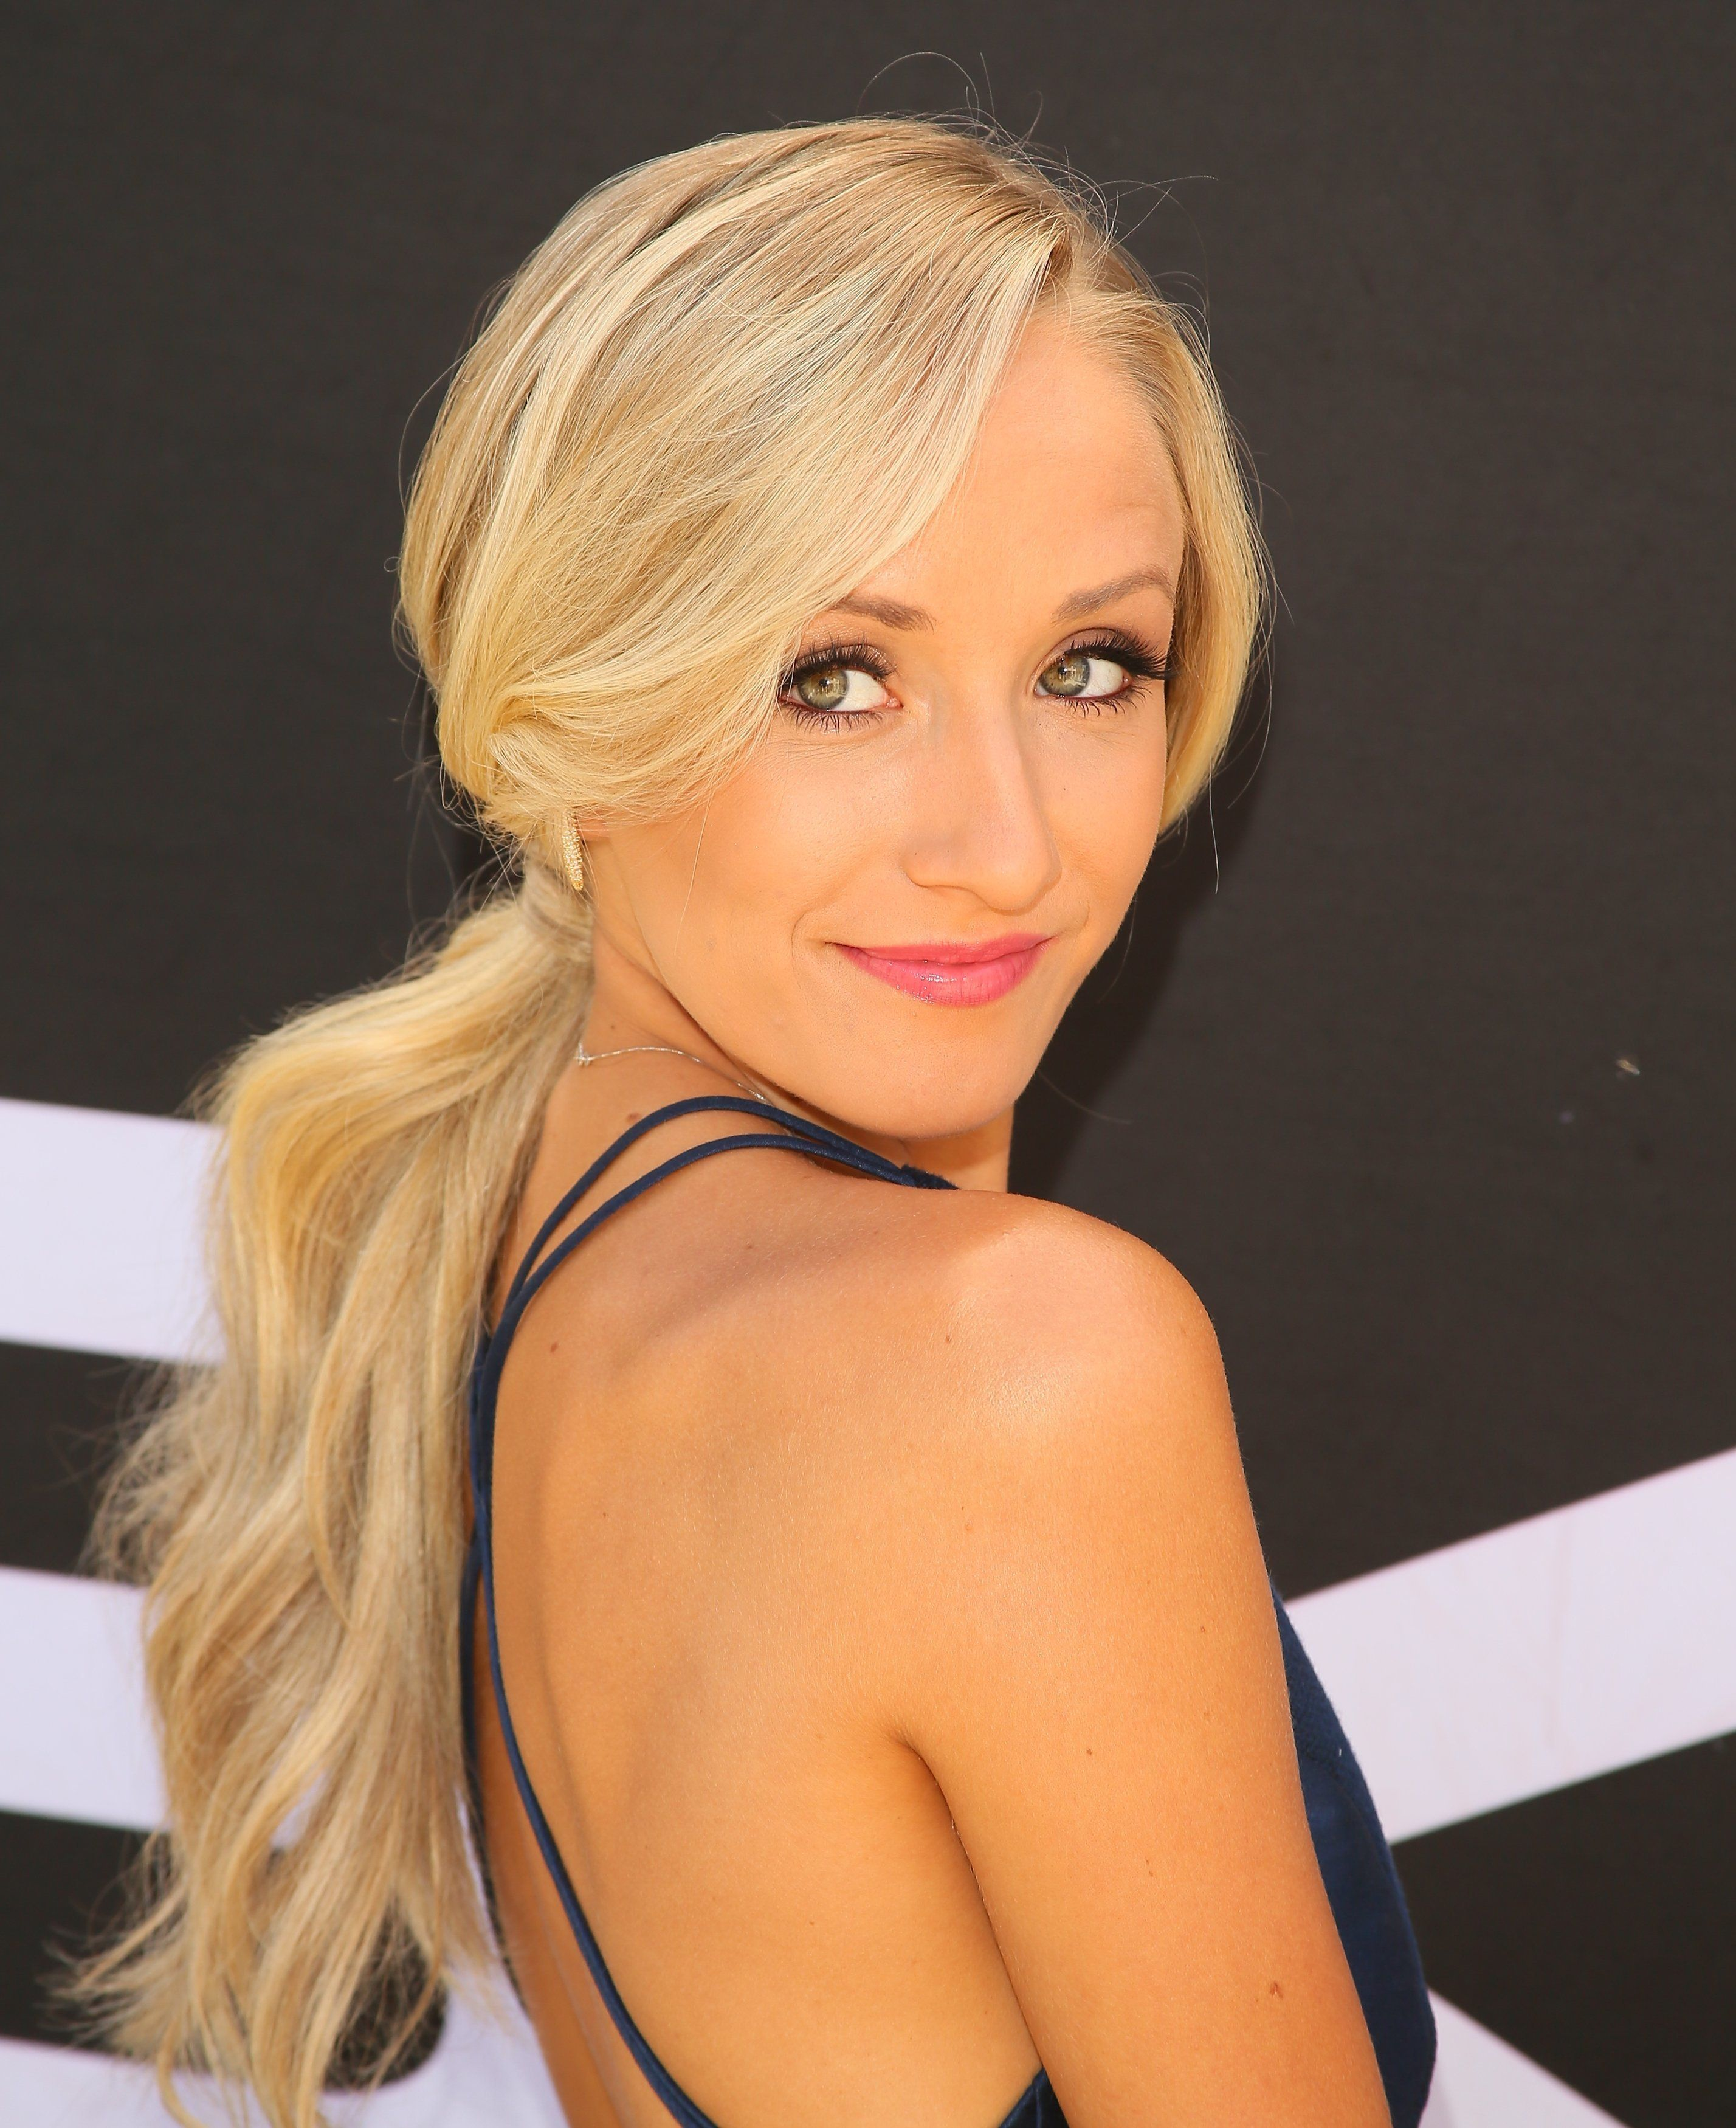 LOS ANGELES, CA - JULY 13: Olympic gymnast Nastia Liukin attends the Greg Louganis' Pre-ESPY Awards Wheaties Breakfast for Champions at the Starving Artists Project on July 13, 2016 in Los Angeles, California. (Photo by JB Lacroix/WireImage)